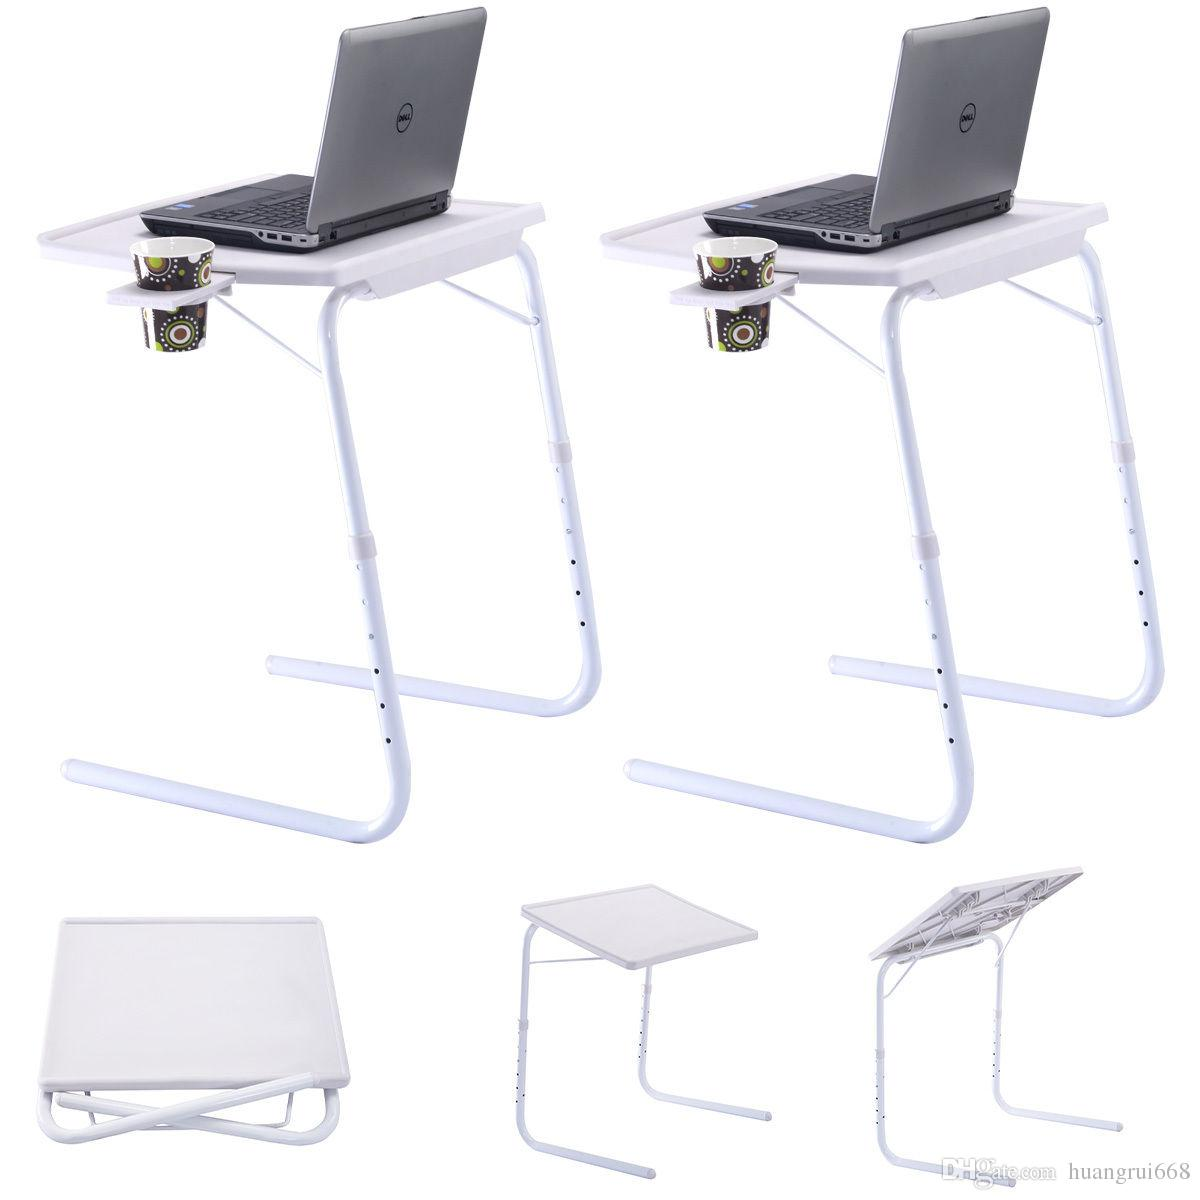 2018 2 X Table Mate Adjustable Pc Tv Laptop Desk Tray Home Office S/ Cup  Holder White From Huangrui668, $29.14 | Dhgate.Com